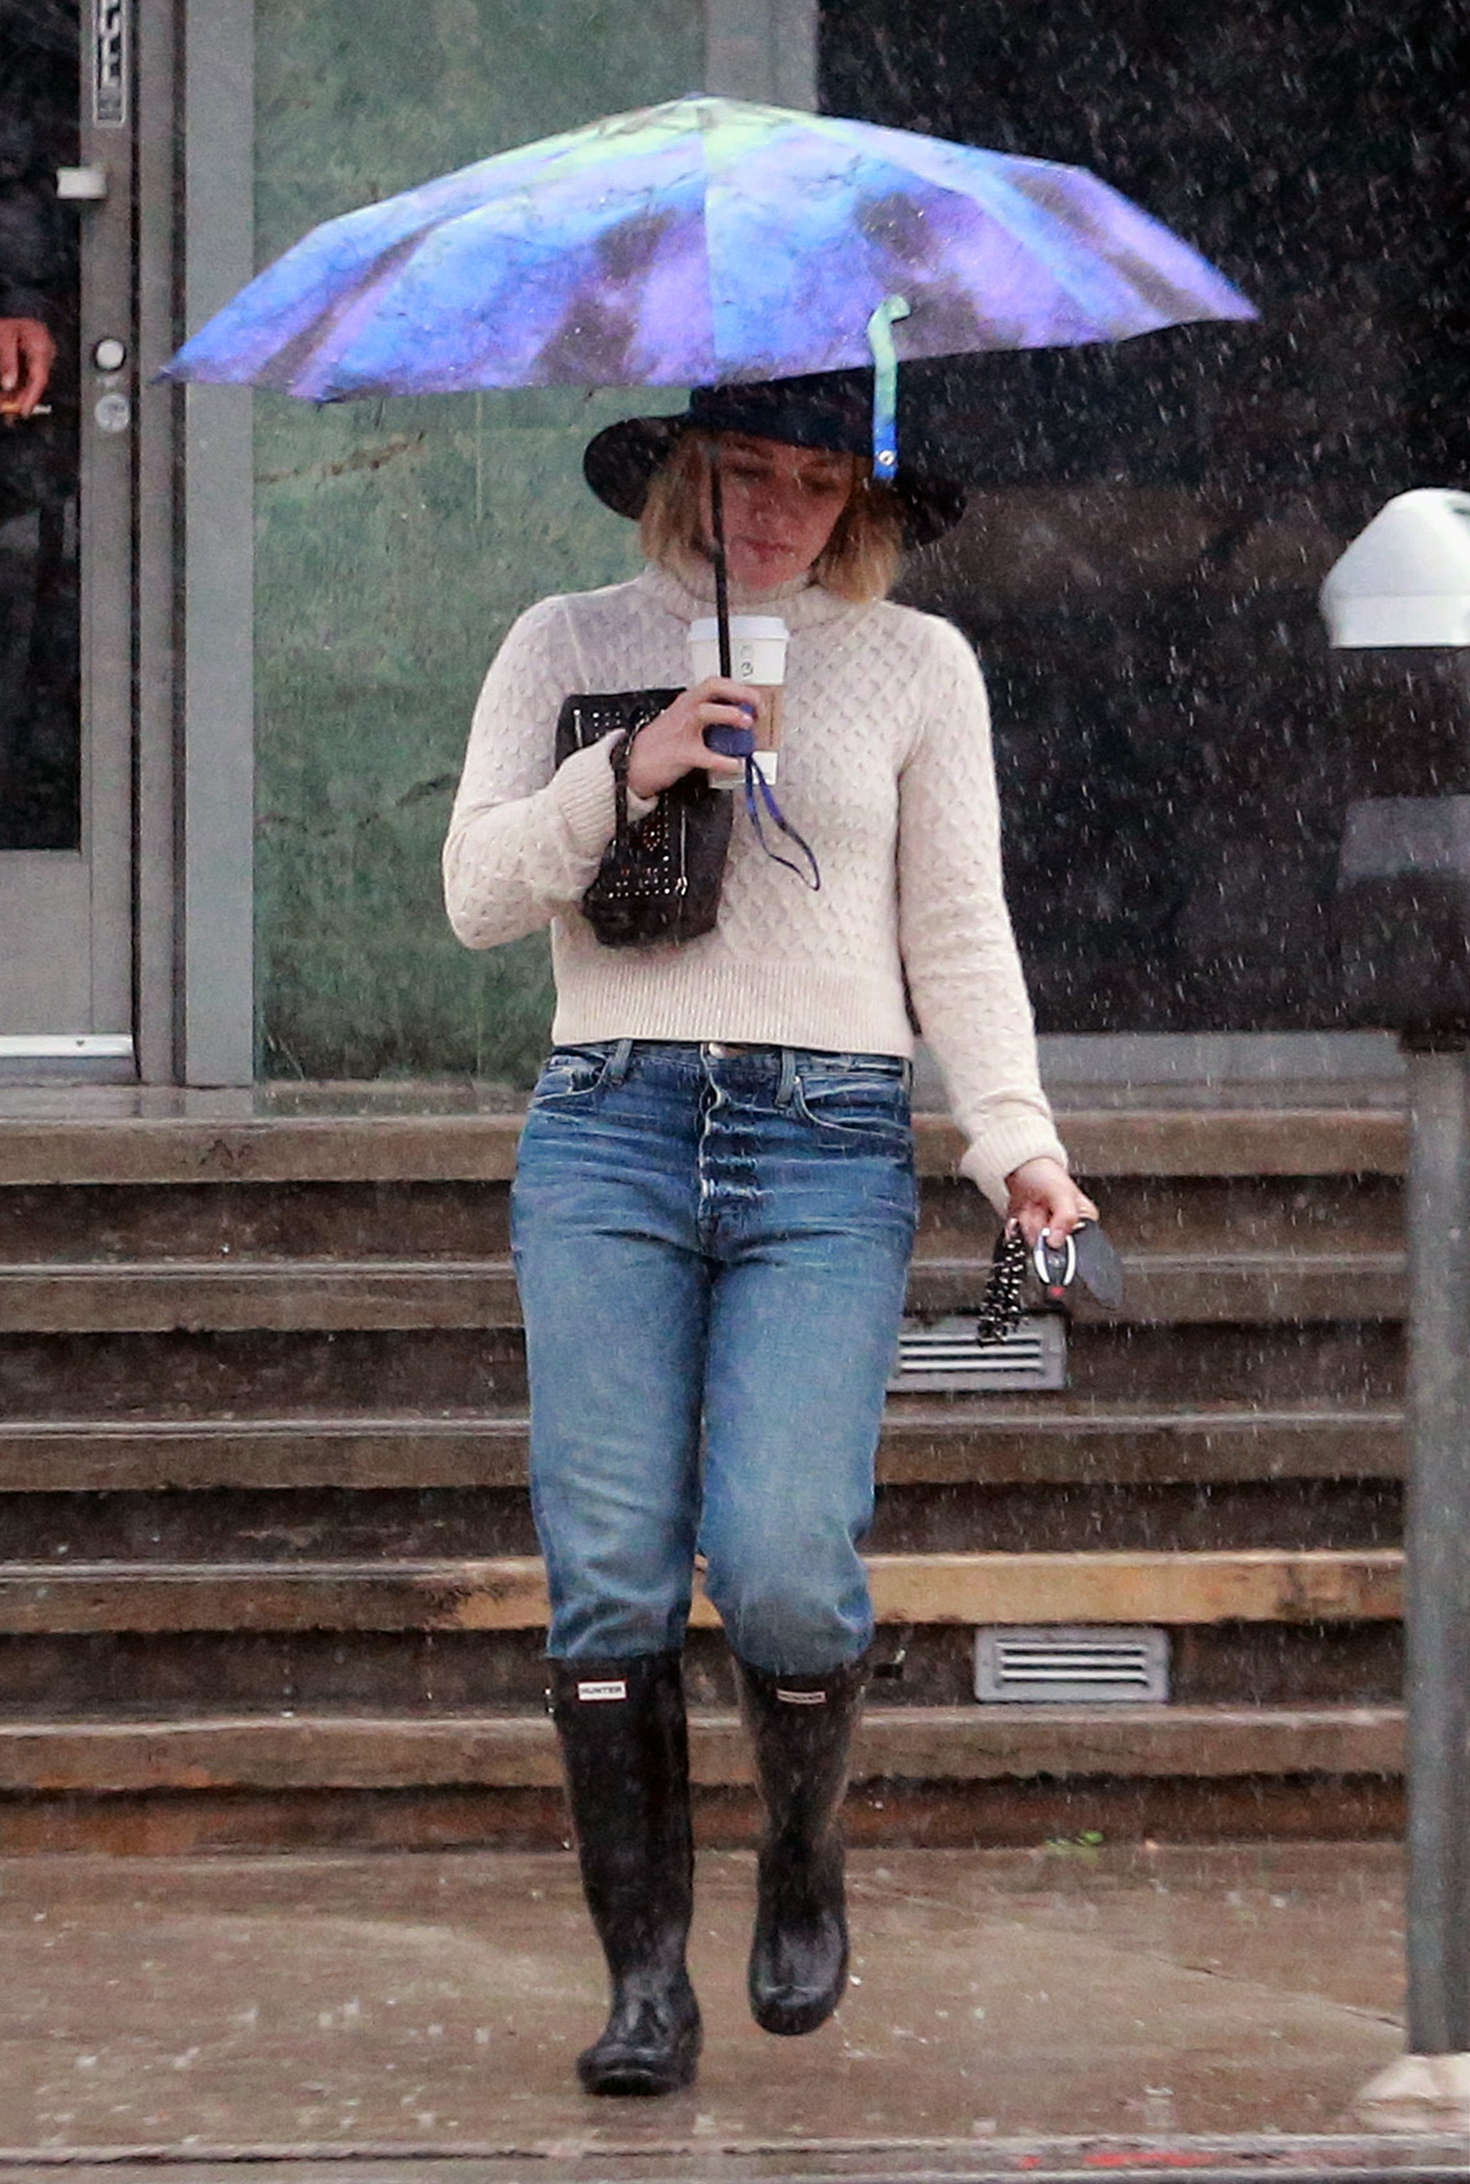 Hilary Duff 2016 : Hilary Duff in Jeans out on a rainy day -28